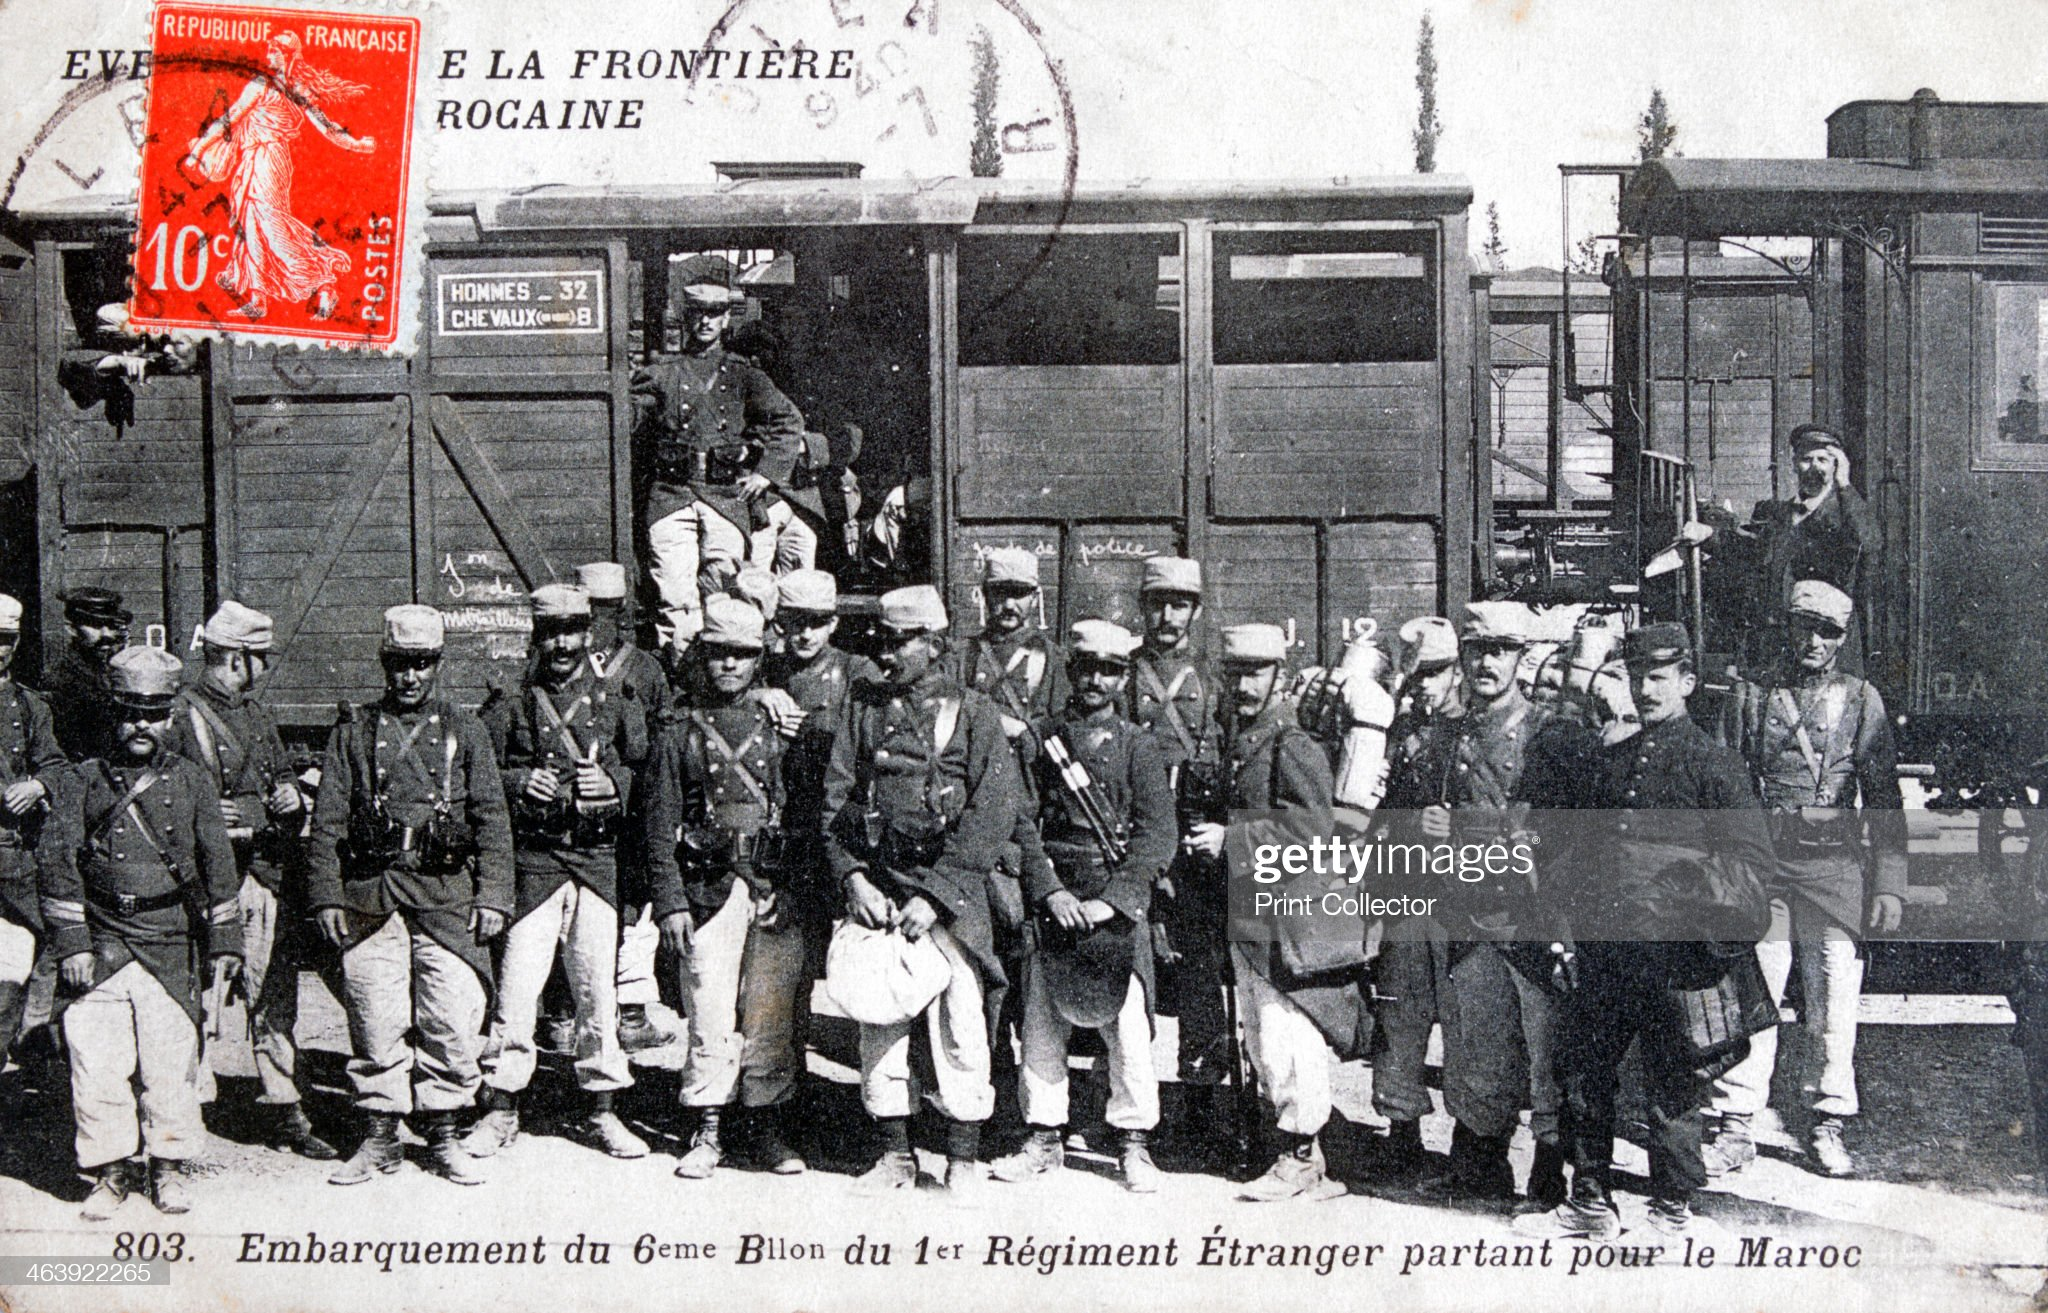 Qui,quand,où ?? 1st-regiment-french-foreign-legion-morocco-1911-french-postcard-picture-id463922265?s=2048x2048